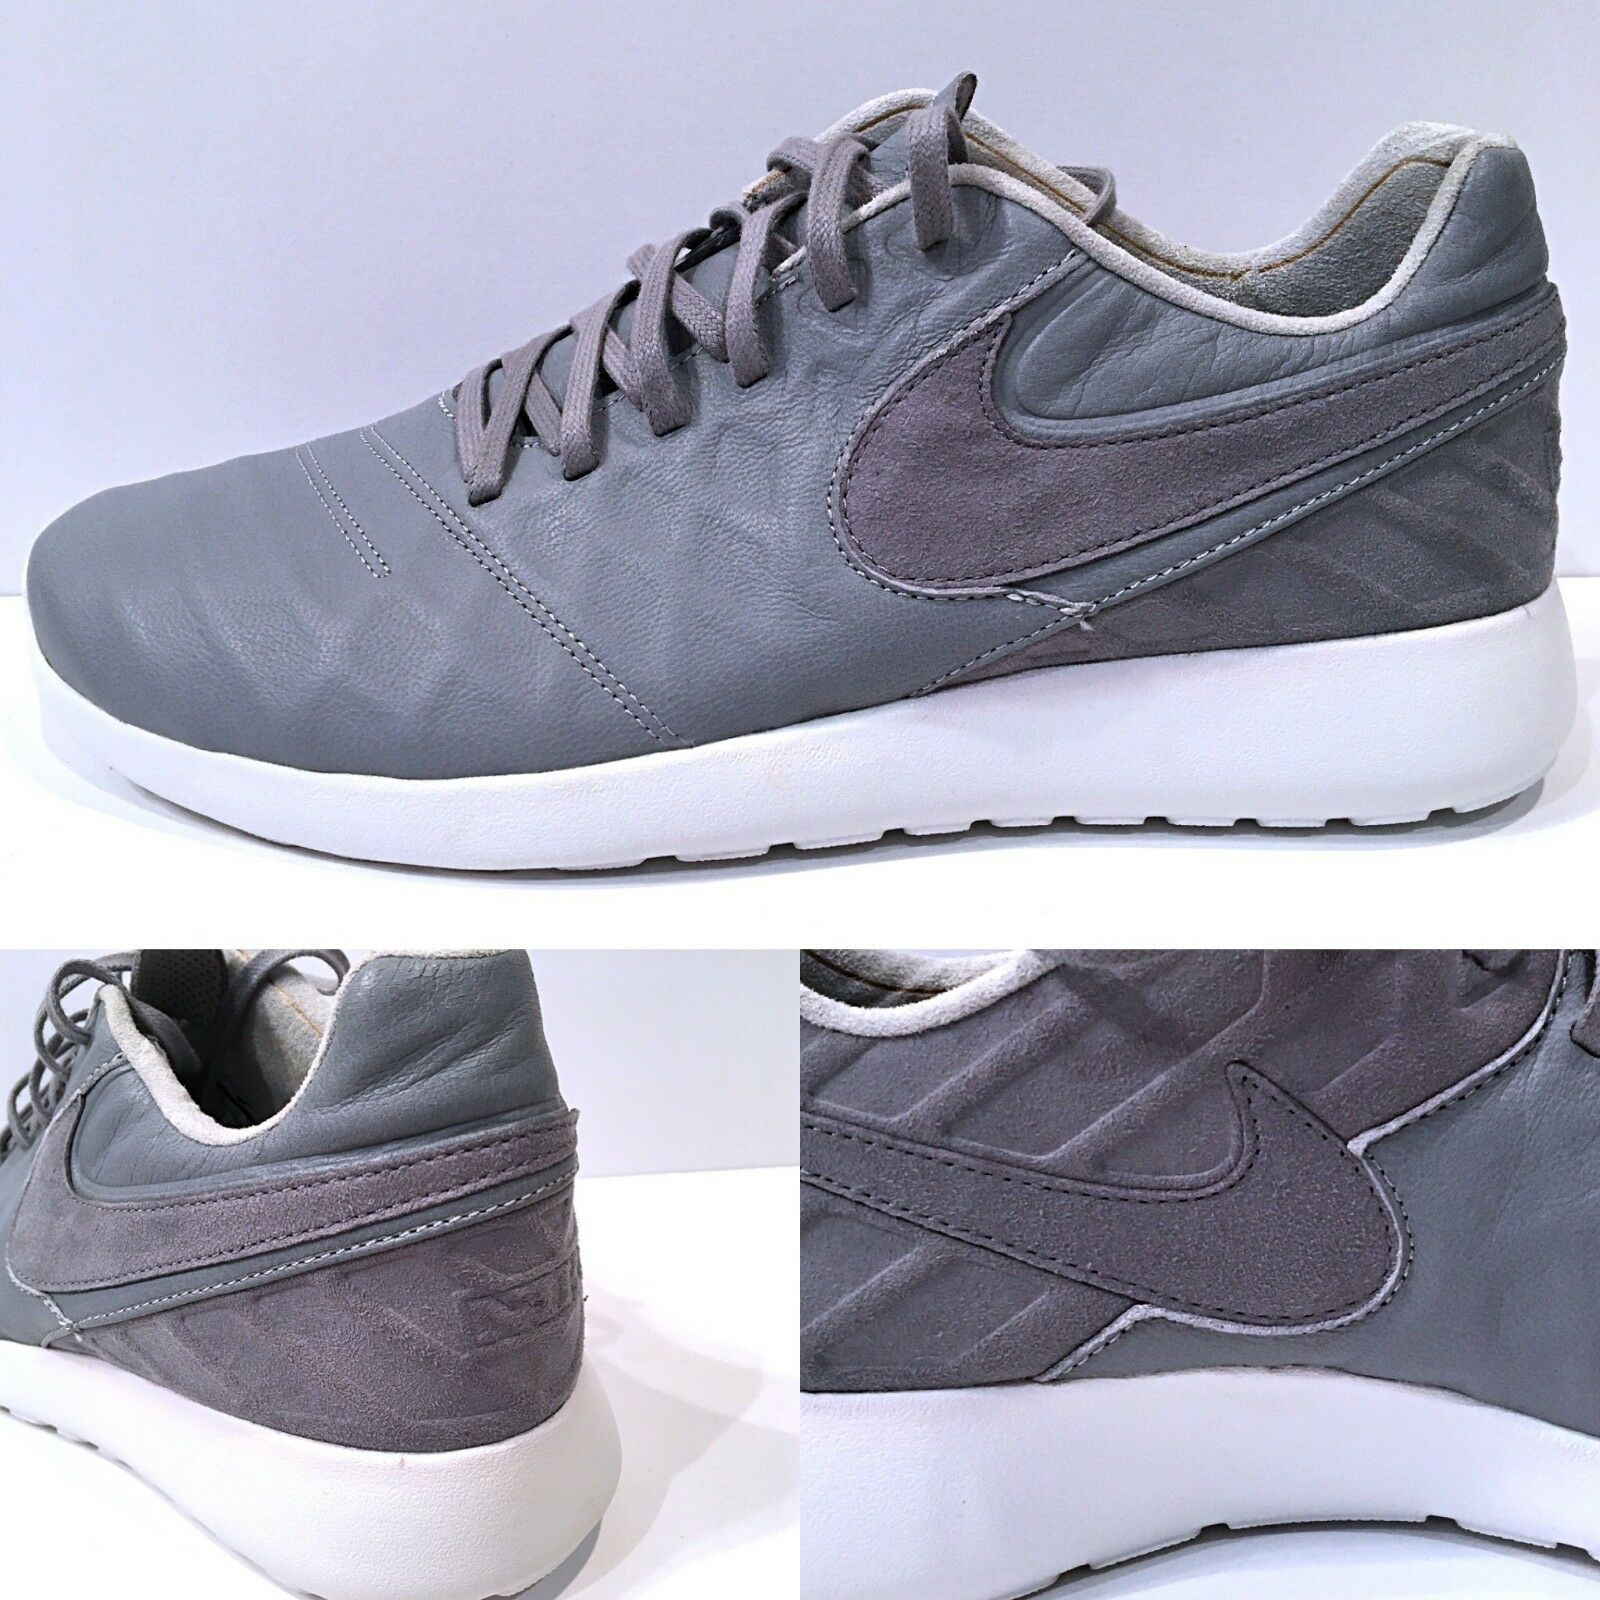 Nike Roshe Tiempo VI QS Wolf Grey White Men's Sneakers New Price reduction The latest discount shoes for men and women